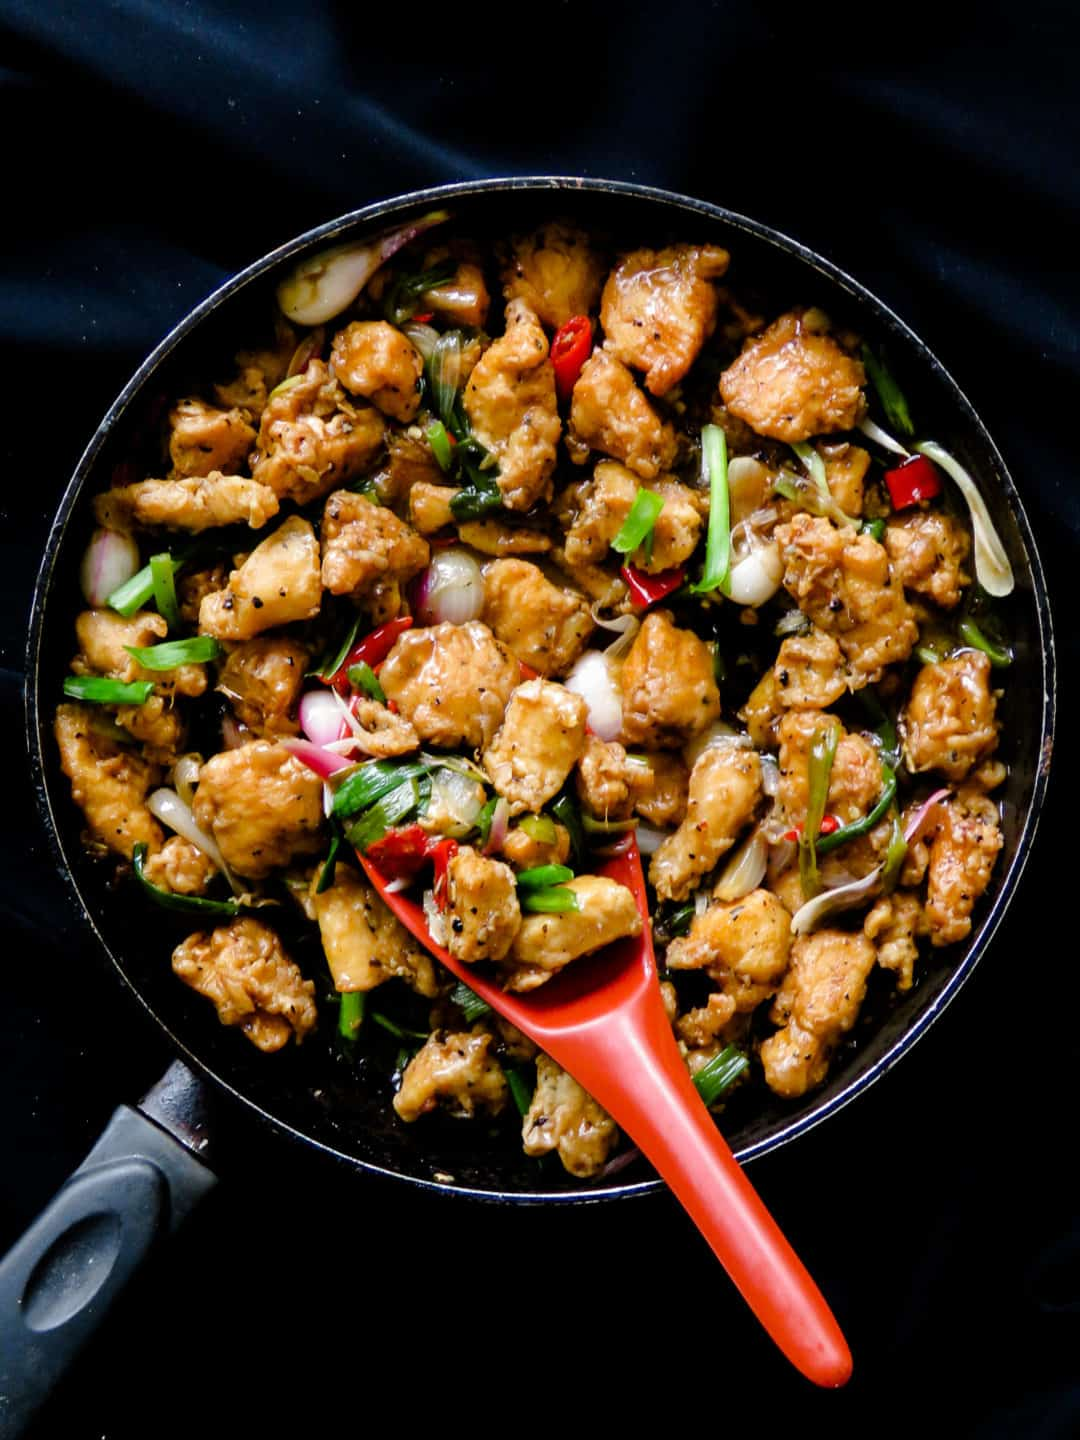 Chinese chicken Manchurian-do something different for your weekend dinner, make a large pan of this delicious (restaurant-style) indo-Chinese dish.  There's no need to make multiple dishes, just a bowl of rice or noodles is all you need for an easy meal for the family. #chinese #fastfood #Indian #meal #skillet #appetizer #chinese